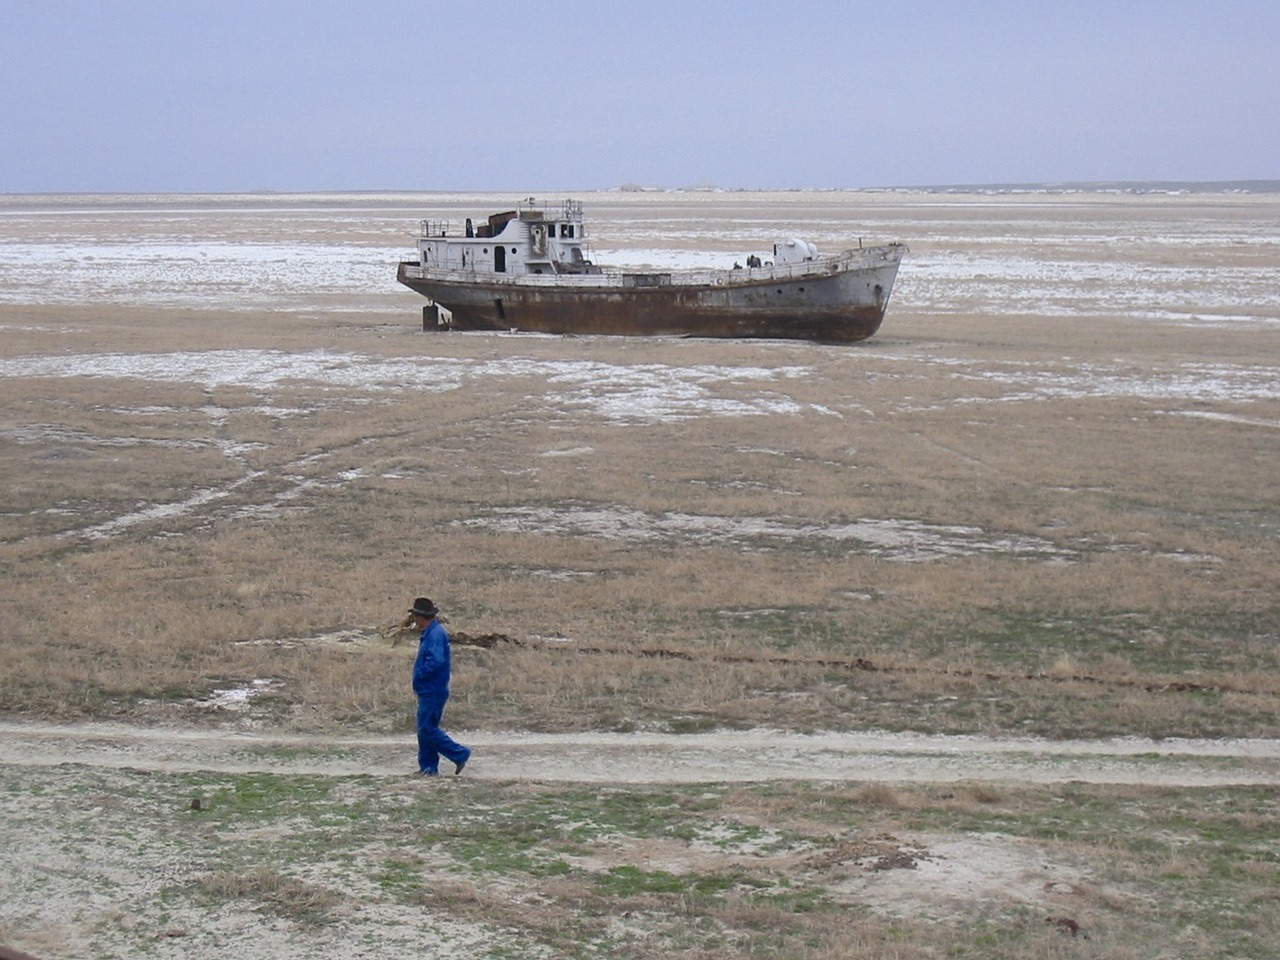 IS CENTRAL ASIA ON THE VERGE OF A WATER WAR? By Ben Makuch      Whether it's Israel maybe pre-emptively striking Iran, Afghanistan spiralling into sectarian violence, Libya becoming home base for Al-Qaeda, or Syria continuing to be the site of a government-led genocide, there's no shortage of potential dirty wars and ominous harbingers in the Middle East and Central Asia. While everyone is focusing on the recent turmoil in Benghazi, a new kind of conflict is rising in Uzbekistan and Tajikistan that could eventually lead to the first water war of the 21st century.  It's fair to say that when Louise Arbour, the hard-ass former UN prosecutor of war criminal Slobodan Milošević, lists her bets on future wars, the rest of us should take her seriously. In December 2011, writing for Foreign Policy, Arbour predicted Tajikistan and Uzbekistan, two obscure Central Asian countries to most westerners, as potential combatants in a war over quickly depleting water resources. Judging bycurrent tensions between the two, she might be right. Basically the Tajiks, who are already plagued by an Islamic insurgency, plan to build the Rogun dam on the Vakhsh River. The river is a major tributary to the Amudarya—the main water vein for downstream Uzbekistan. While the hydroelectric power from the proposed dam would make the Tajiks rich, it'll make the Uzbeks thirsty. This has been a problem for Uzbekistan since Stalin's failed plan for the Transformation of Nature during the 1940s drained the Aral Sea (Uzbekistan's main water reserve) to irrigate cotton fields. Pissing off the Uzbeks, however, may not be what the Tajiks want to do. Besides being geopolitical wildcards, Uzbek President Islam Karimov is widely considered a tyrant, ruling over his country's oil reserves and national wealth since a questionable 1991 election. He's also a cheap imitation Saddam. And like any delusional dictator, he's known for his outlandish behavior: like rewriting history books to make himself the spiritual descendant of the warlord Tamerlane, owning a soccer team in the national league (who are conveniently champions nearly every year), and allegedly ordering the assassination of a political dissident hiding in Sweden. Human Rights Watch even accused his regime of systematic torture, including boiling rebels alive. CONTINUE